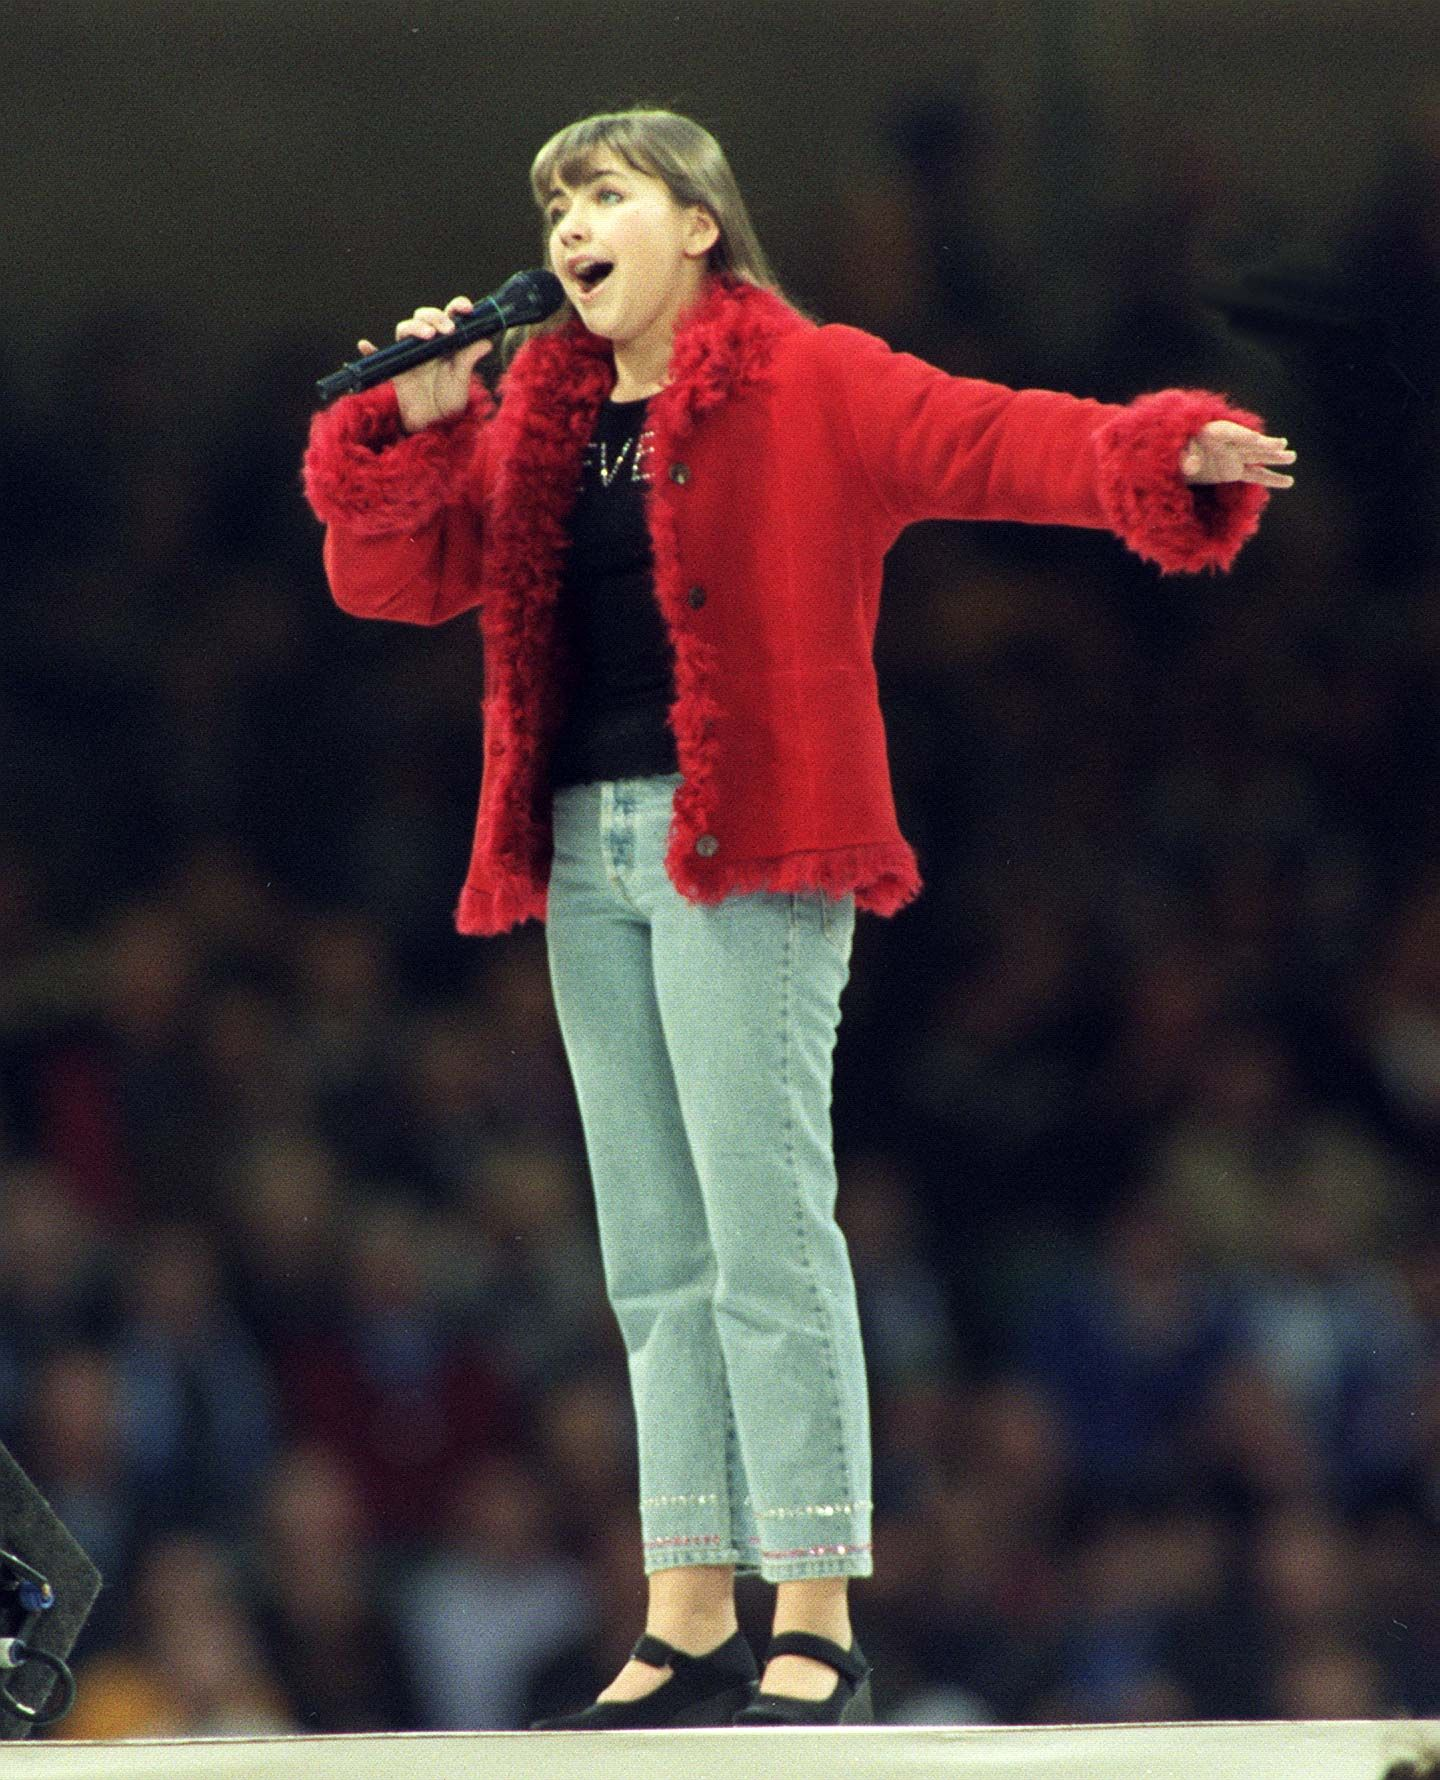 WALES, UNITED KINGDOM - NOVEMBER 06:  Charlotte Church singing at the closing ceremony for the 1999 Rugby World Cup, Millennium Stadium, Cardiff, Saturday.  (Photo by Ross Setford/Getty Images)